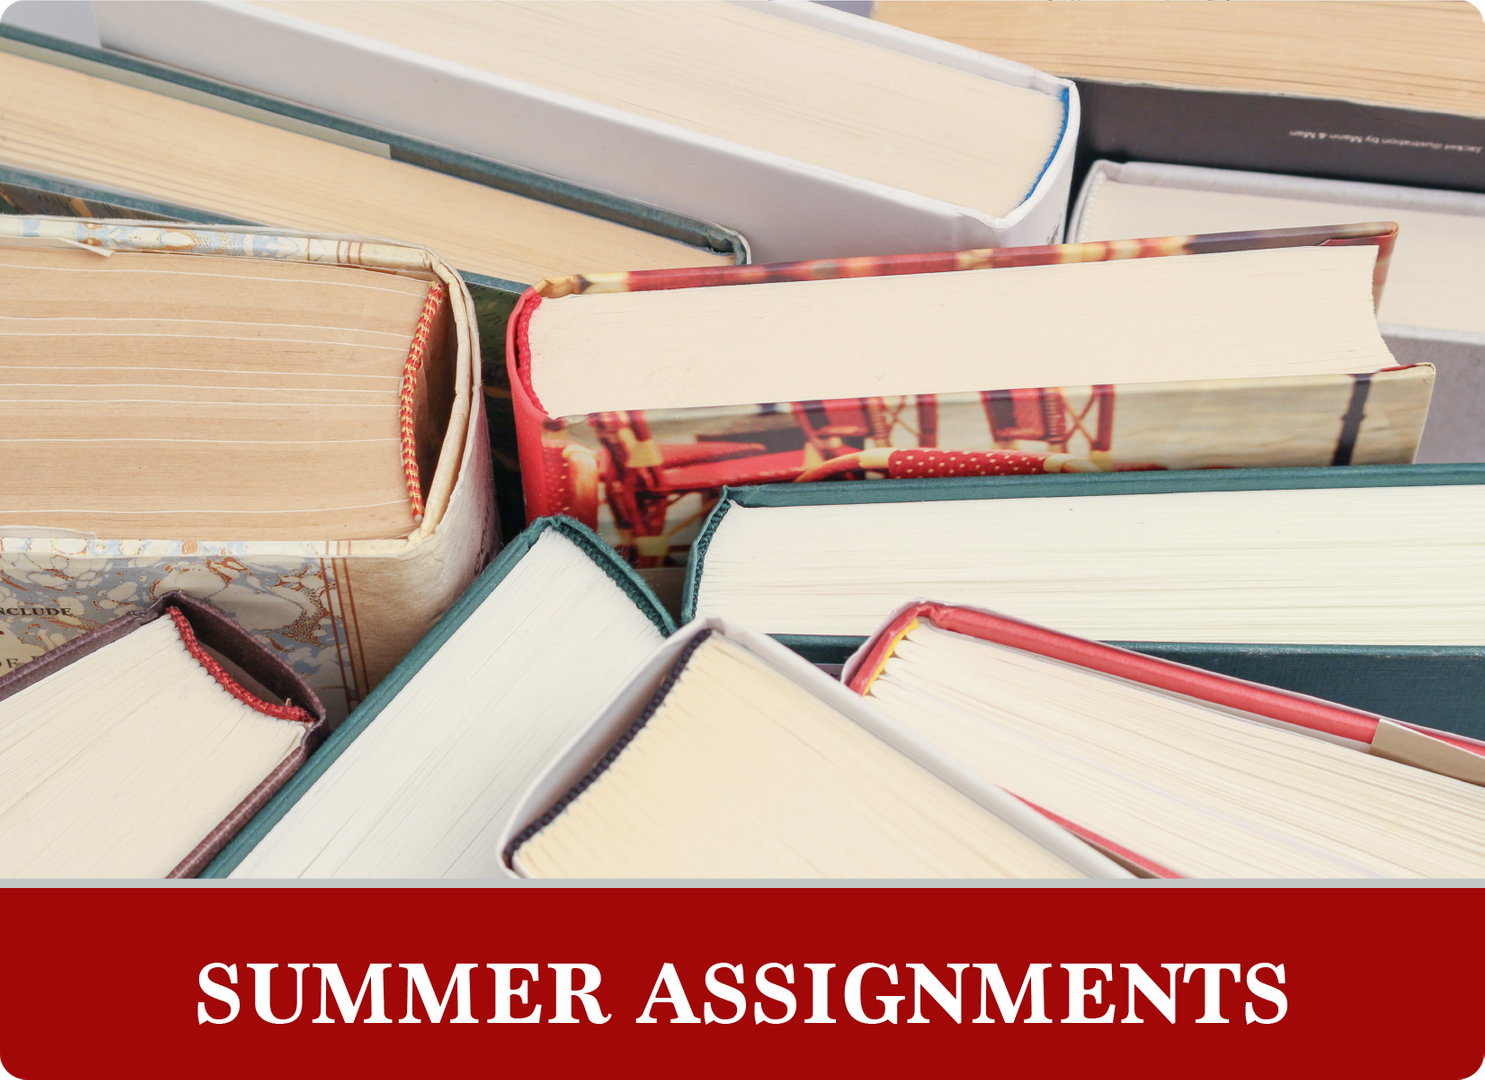 Summer Assignments: Books